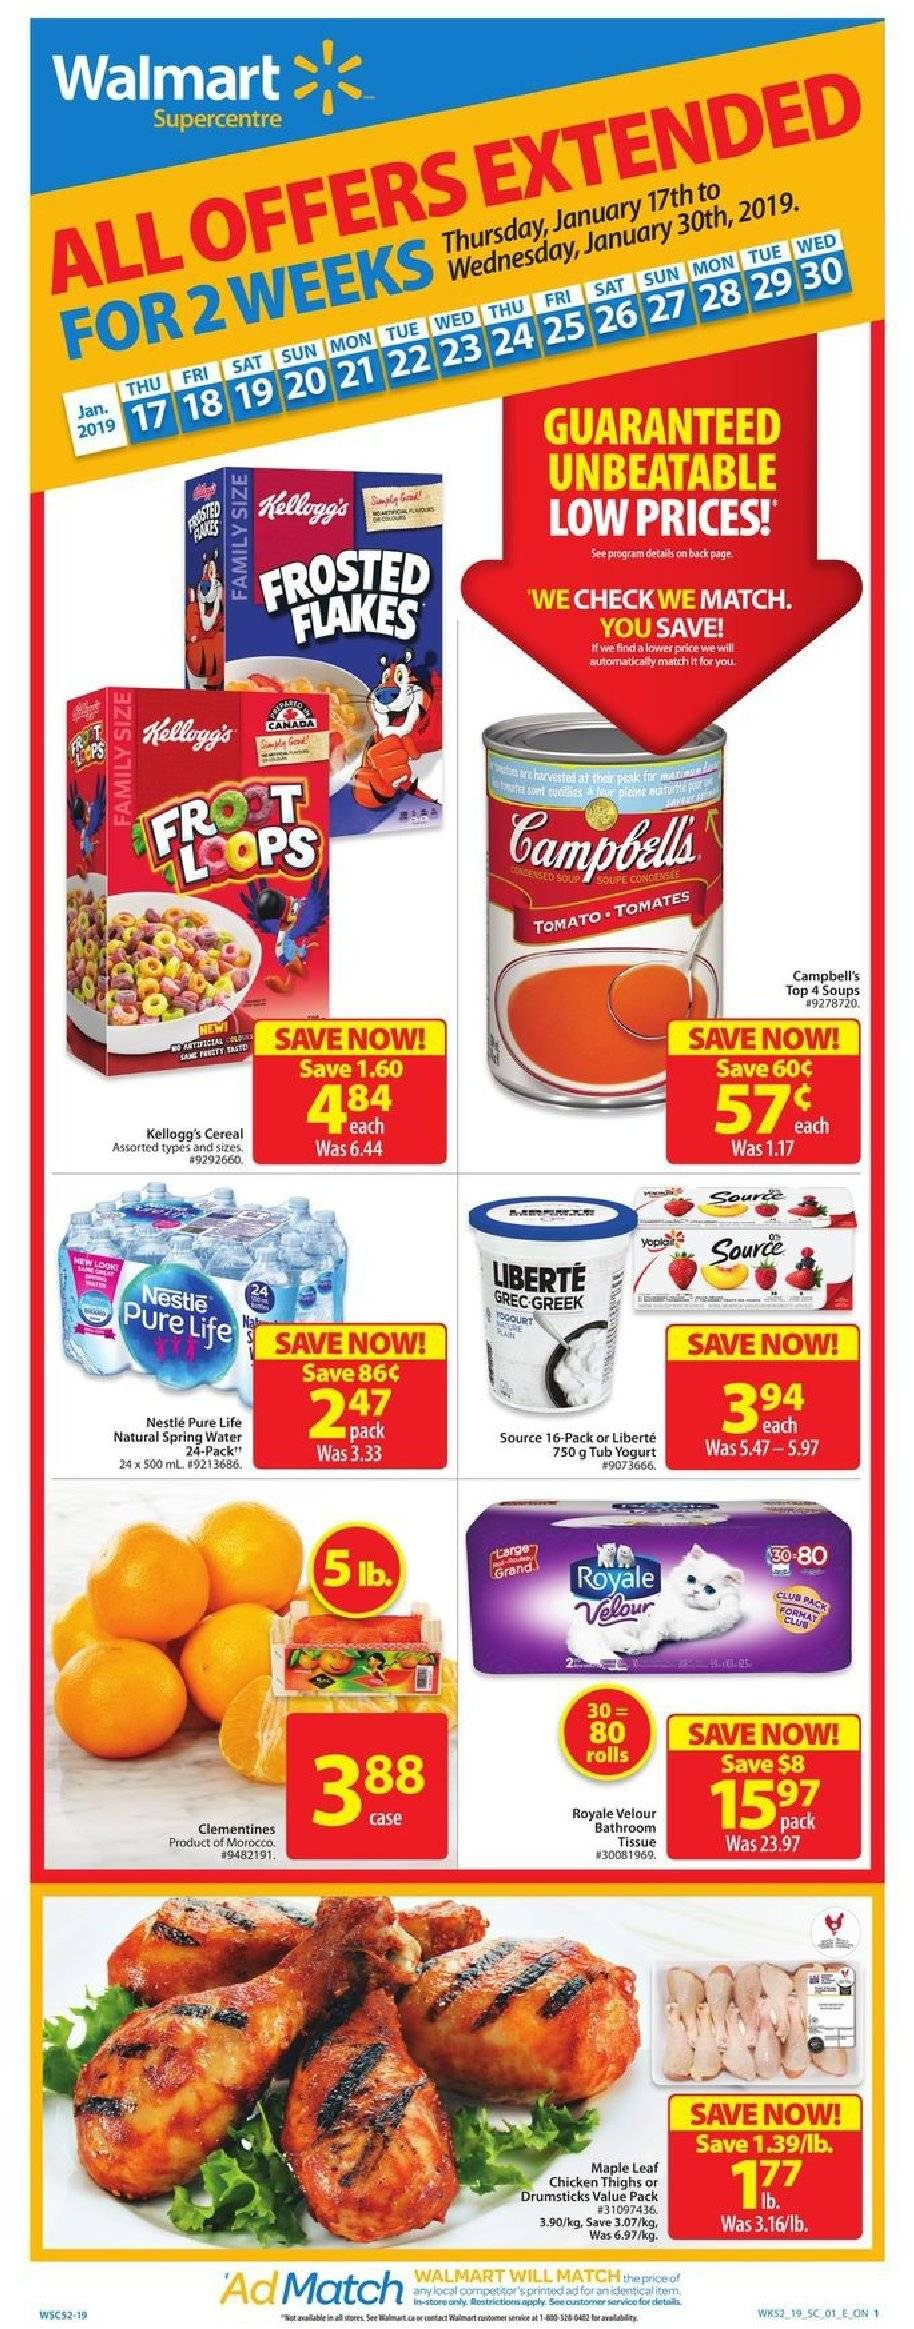 Walmart Flyer - January 17, 2019 - January 30, 2019 - Sales products - campbell's, cereals, nestlé, spring water, yogurt, chicken, chicken thighs, cereal, tomates, kellogg's. Page 1.